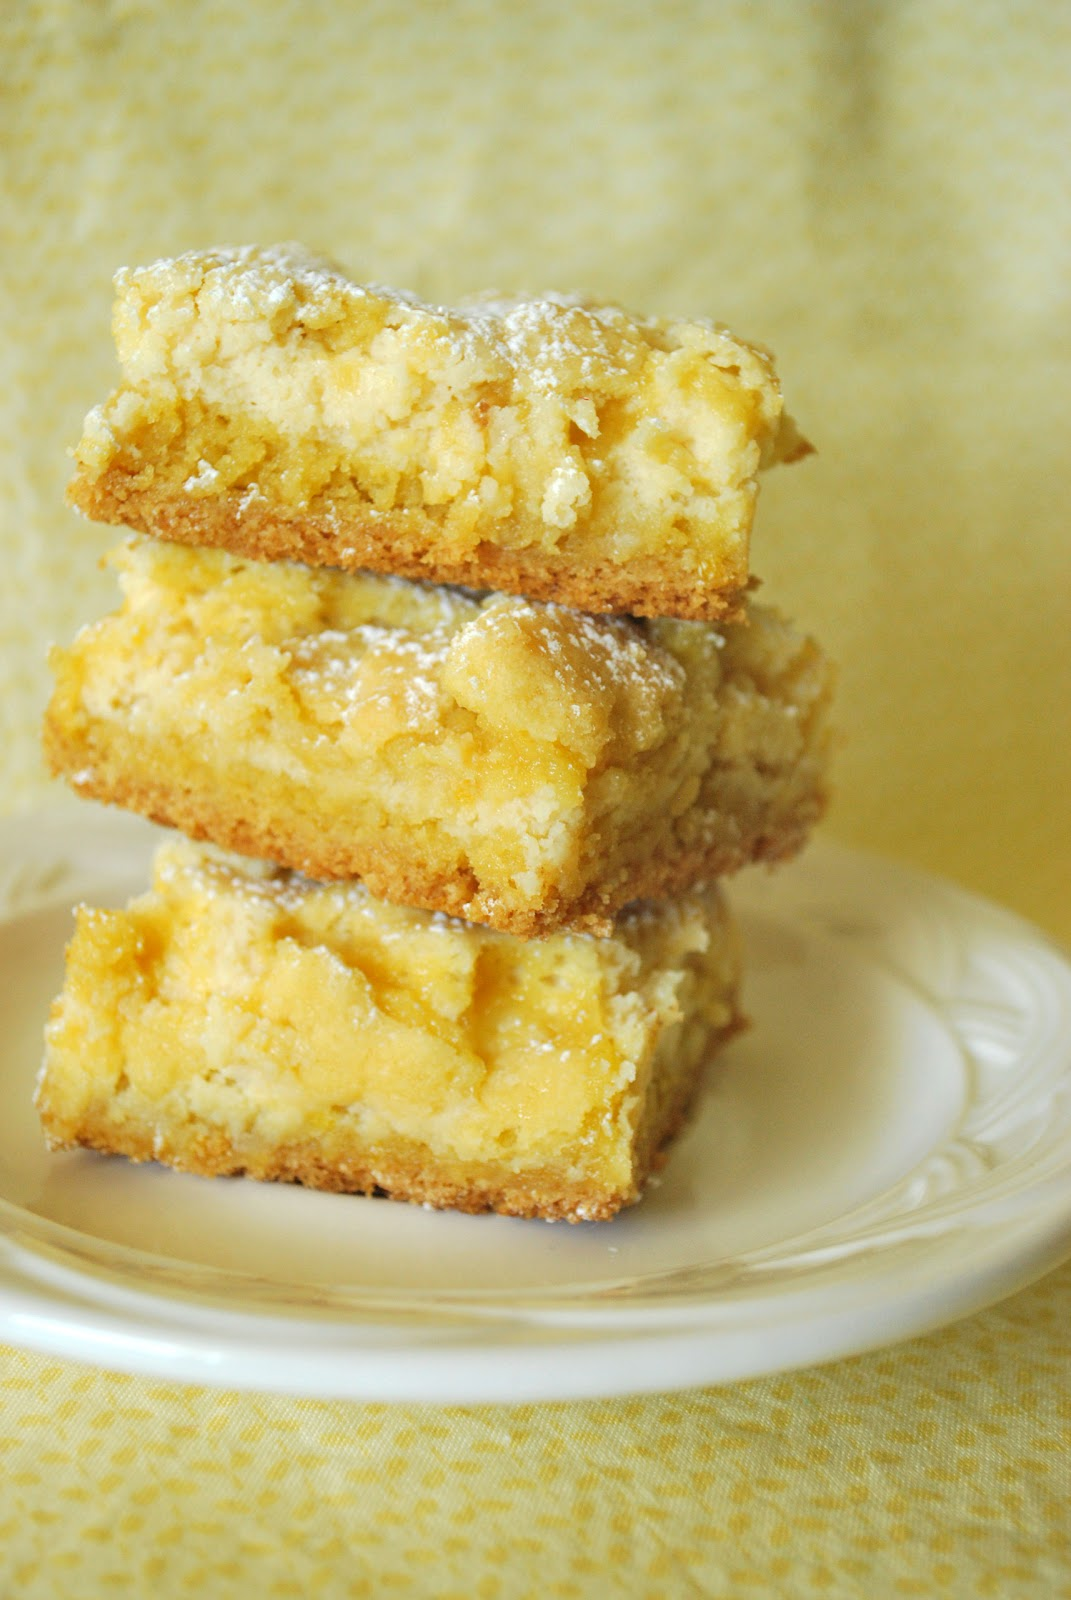 Larissa Another Day: Lemon Cheesecake Bars